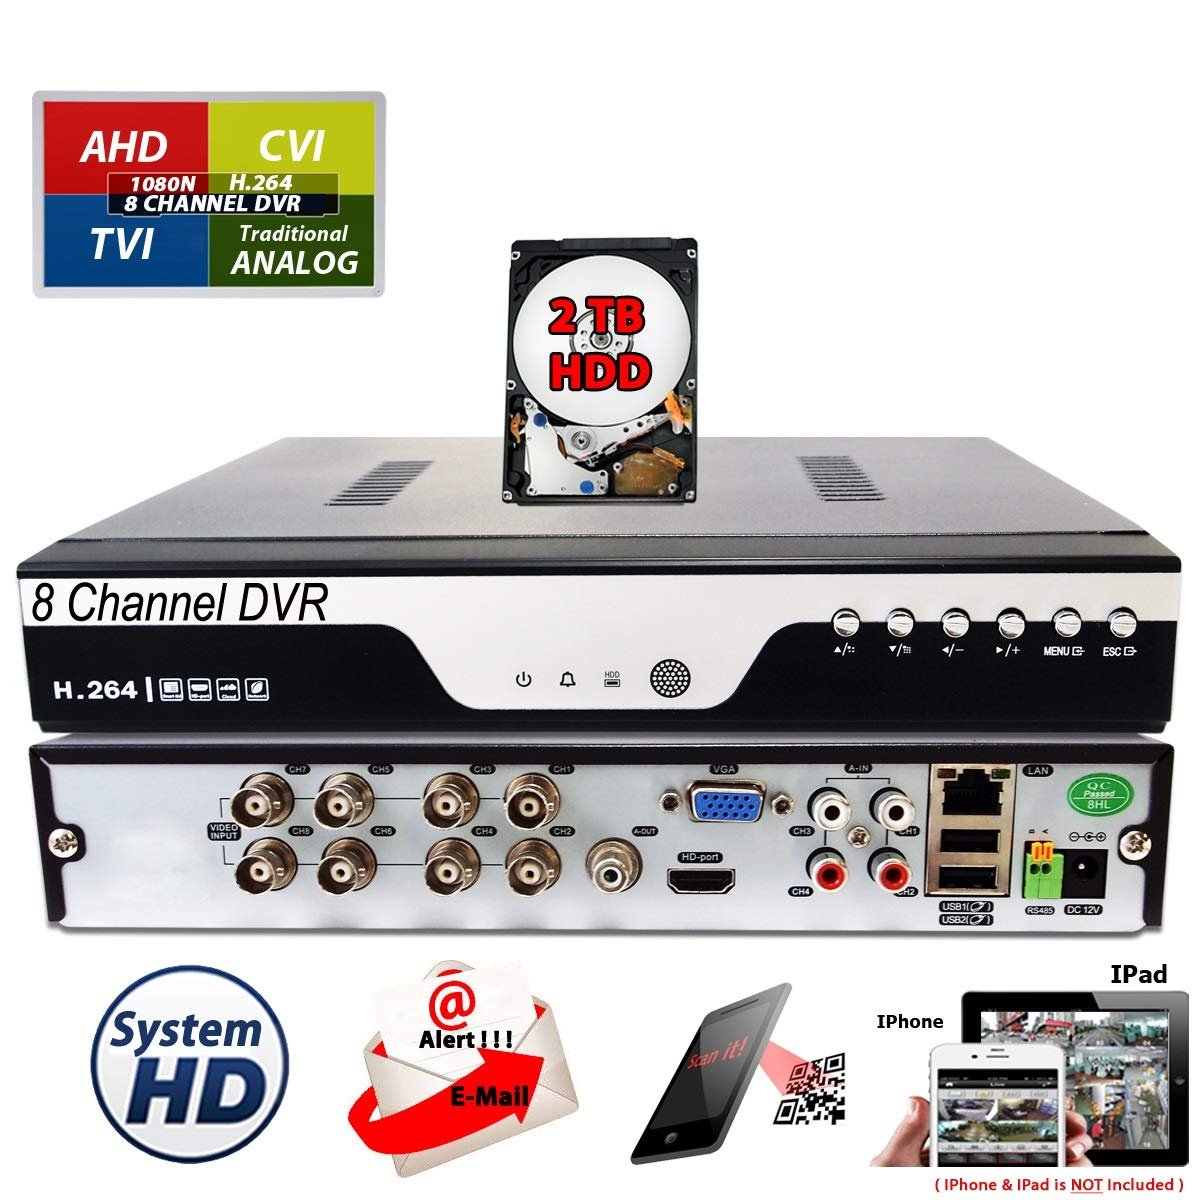 Evertech 8Ch DVR with 2TB HDD H.264 High-Definition TVI AHD CVI Analog Home Office Standalone CCTV Security Digital Video Recorder with 2TB HDD Installed and Pre-Configured by Evertech